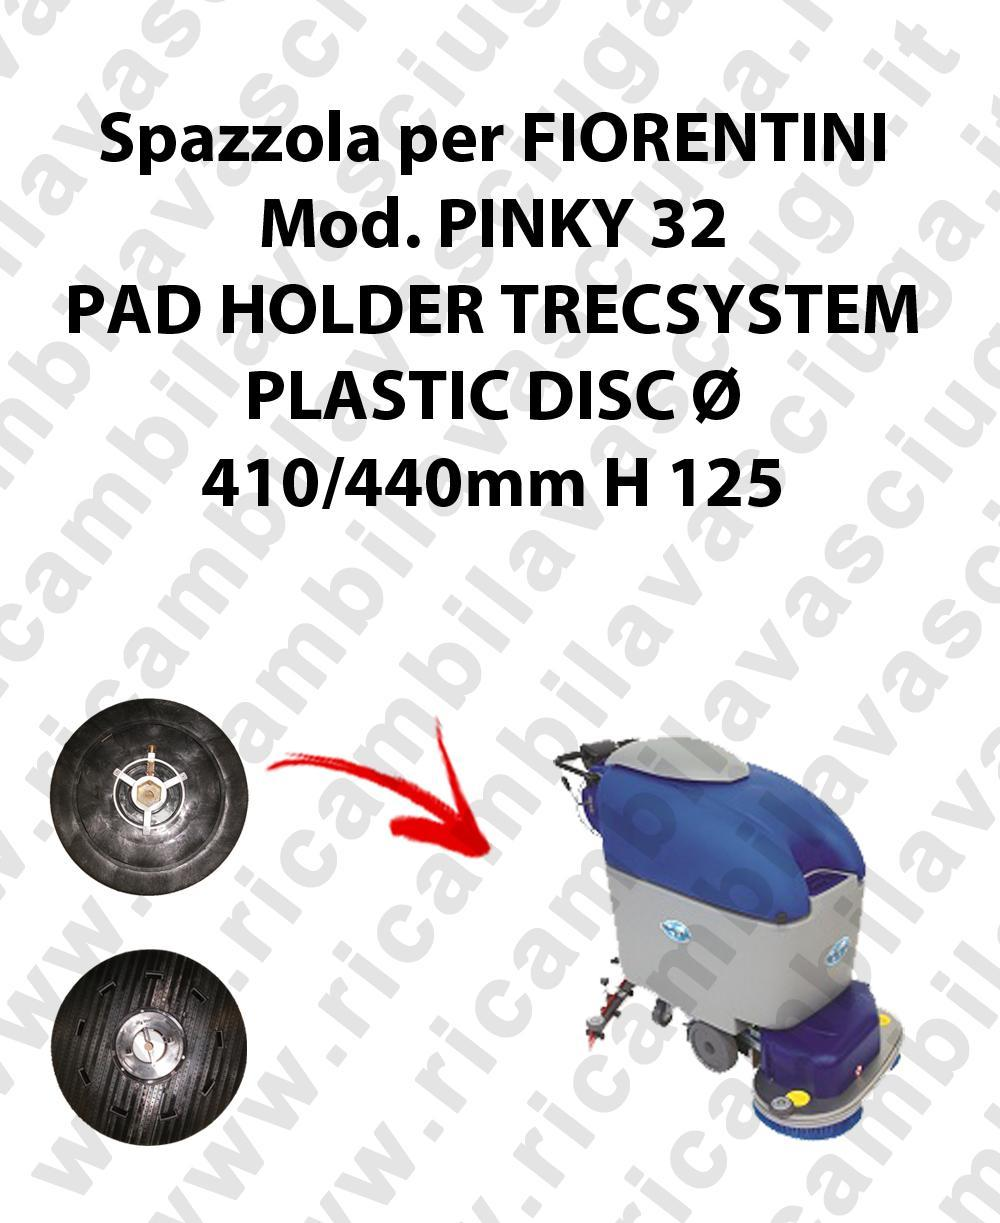 PAD HOLDER TRECSYSTEM  pour autolaveuses FIORENTINI Reference PINKY 32